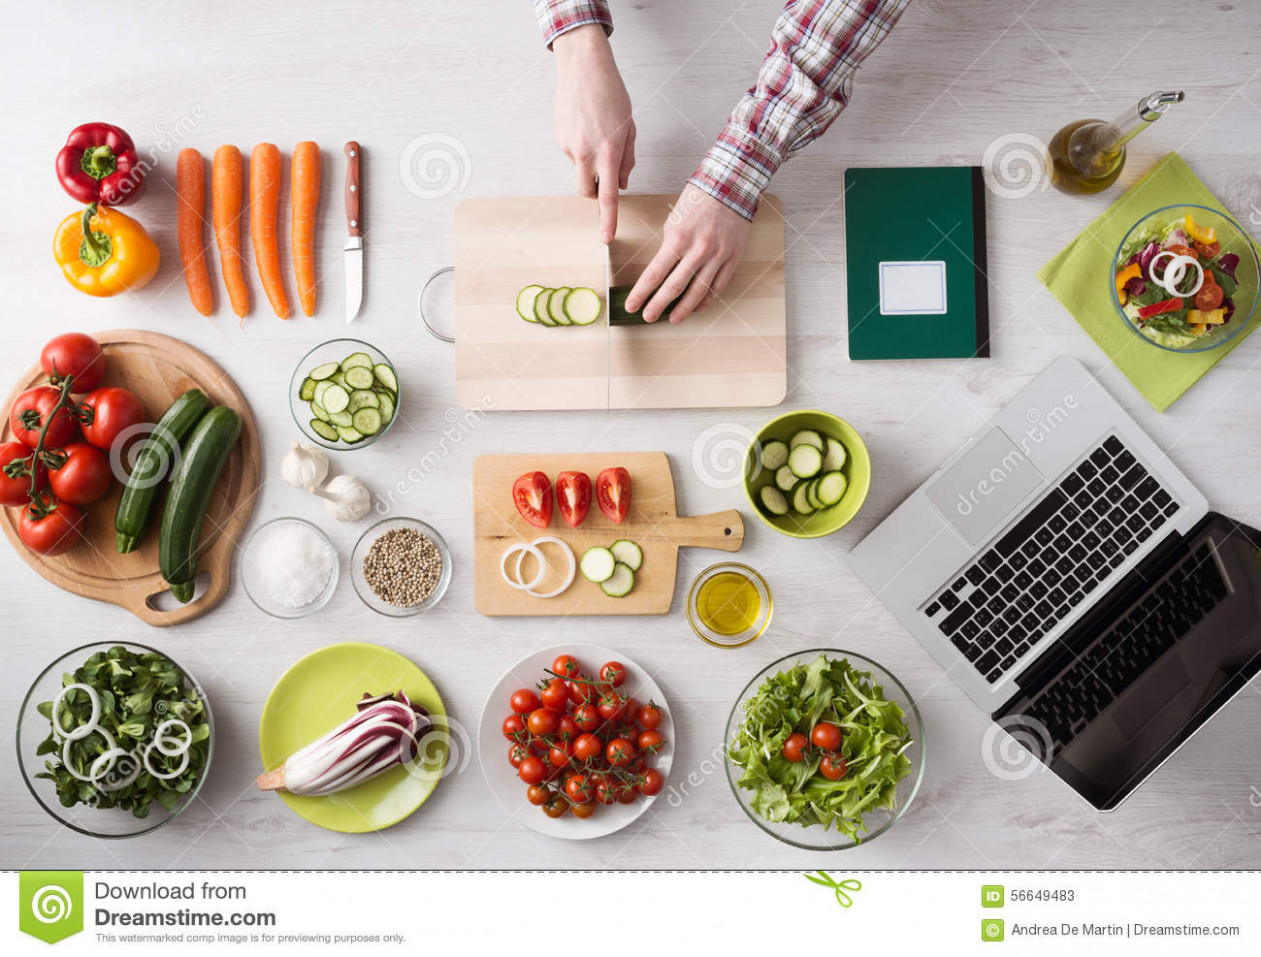 Cooking At Home With Online Recipes Stock Image - Image of ...